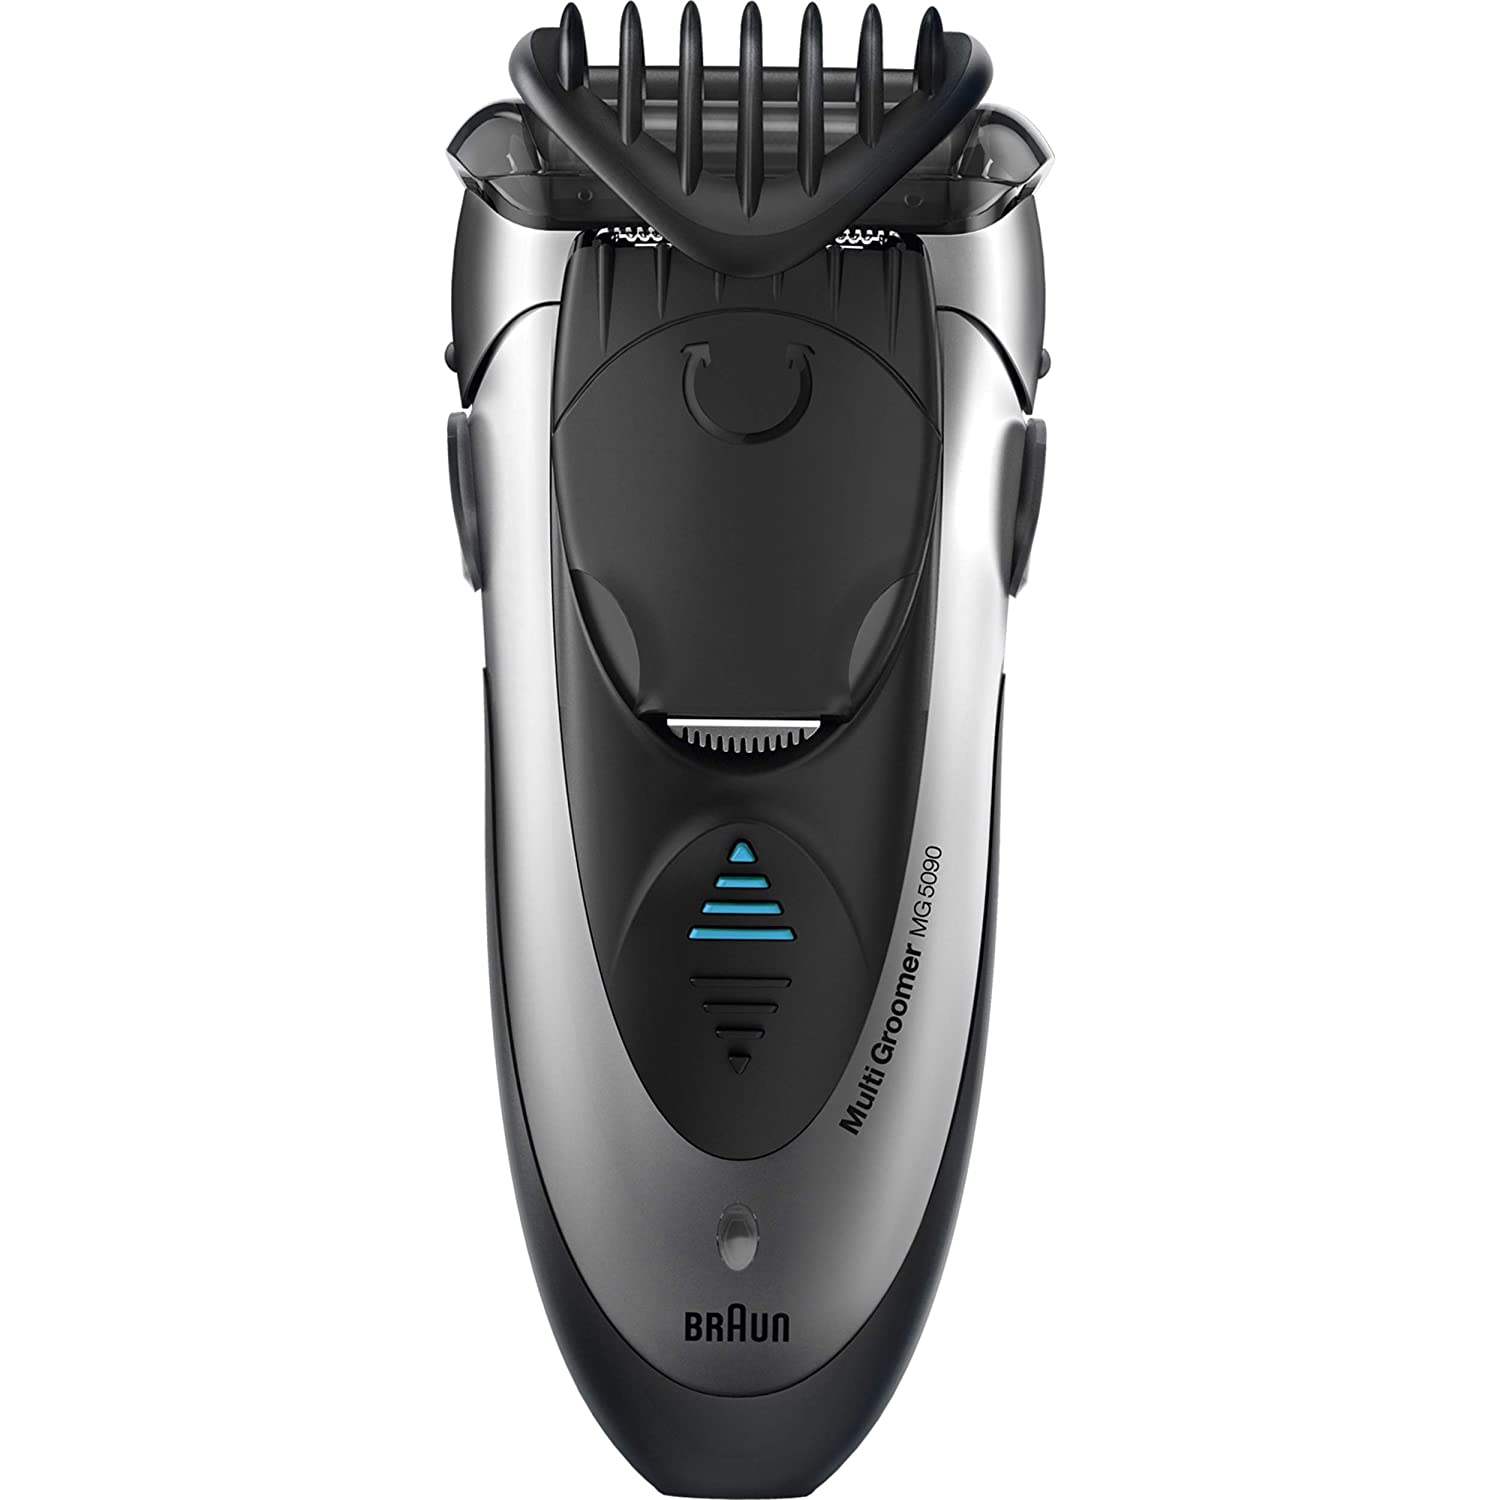 Braun MG5090 Trimmer, 3-in-1 Ultimate Hair Clipper